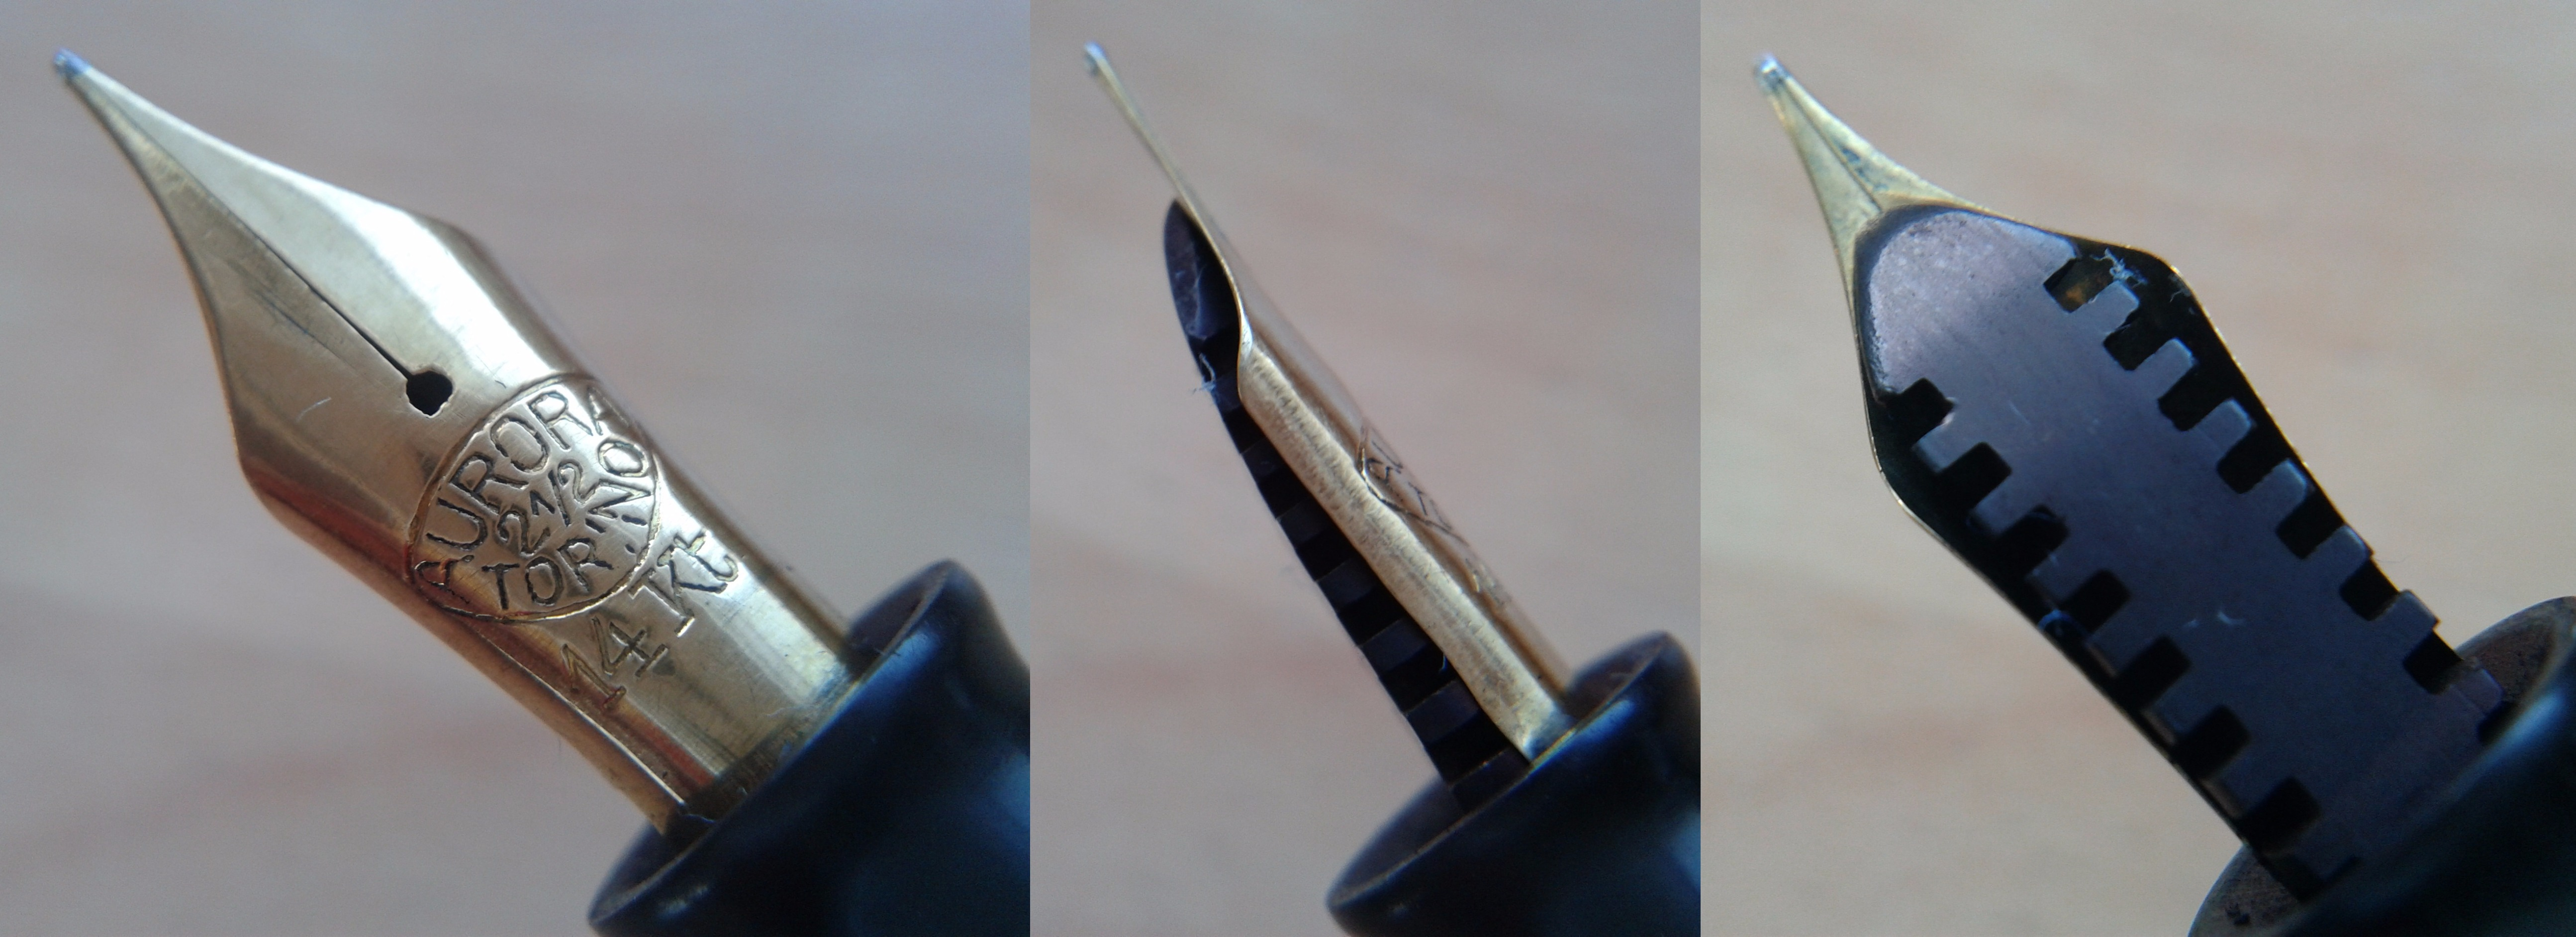 18. ASU. nib and feeder.jpg